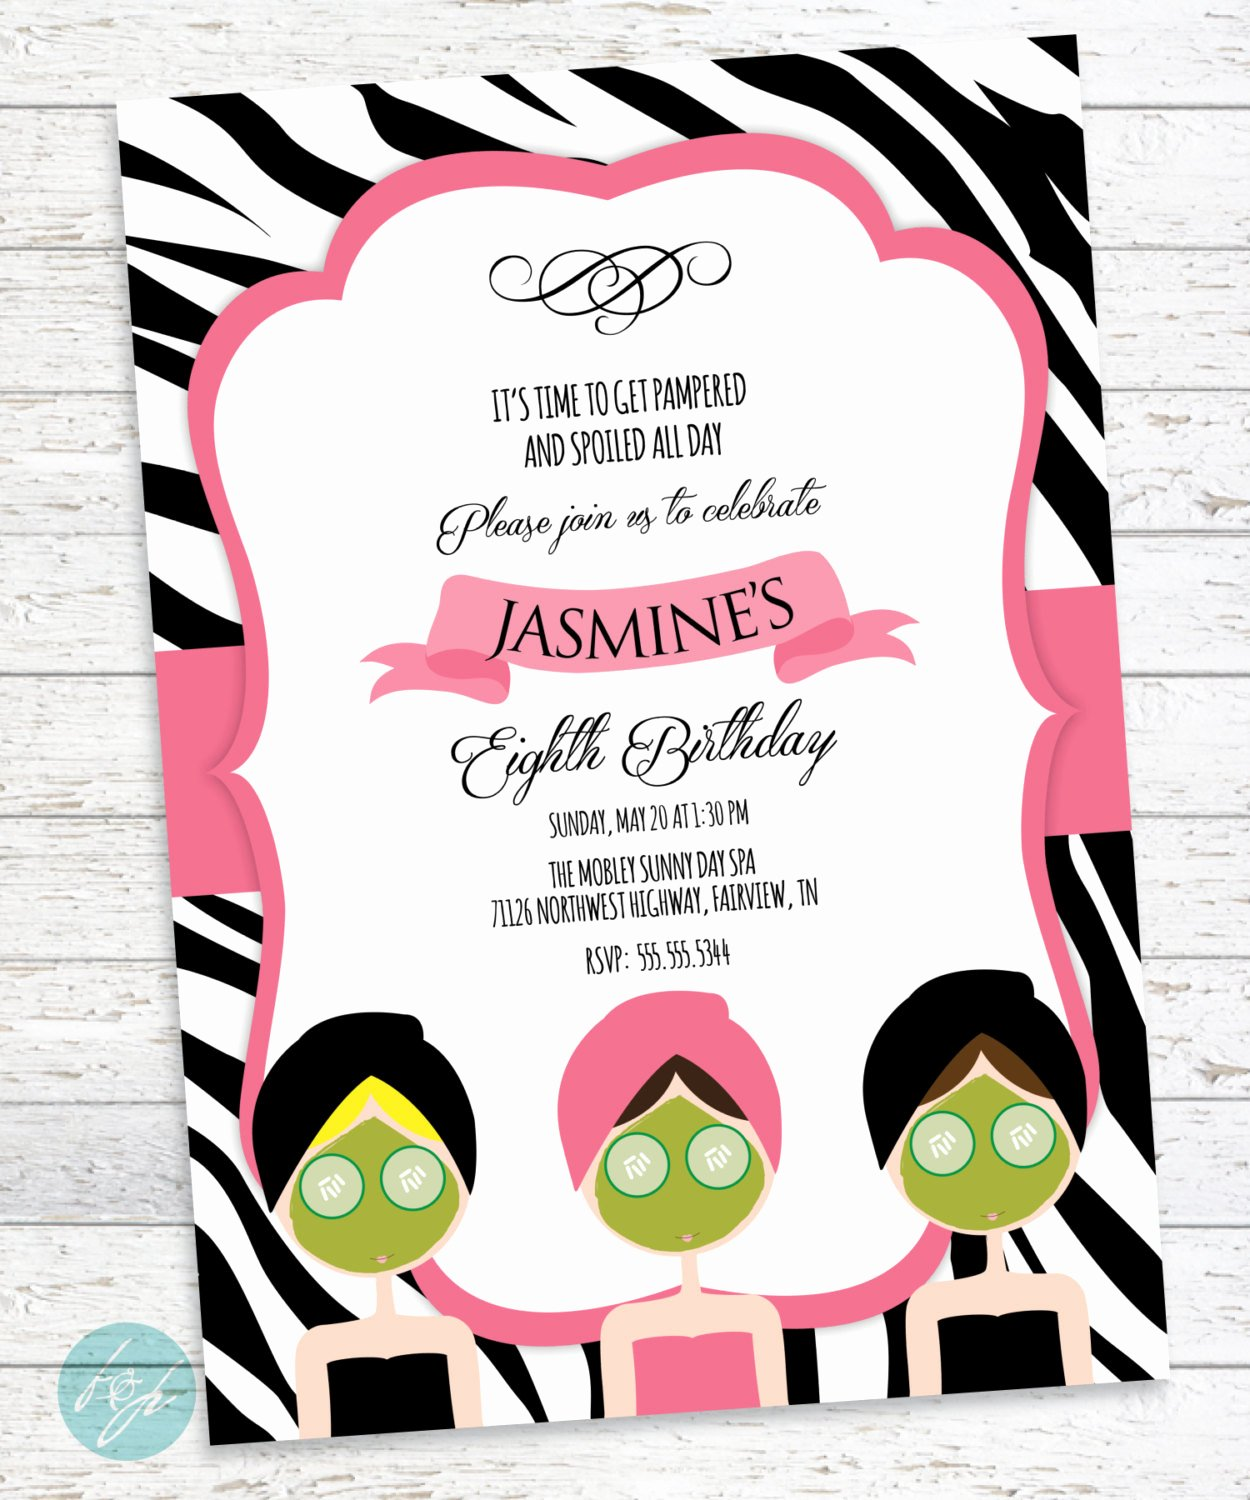 Spa Day Invitation Best Of Spa Birthday Invitation Spa Day Spa Party by Flairandpaper